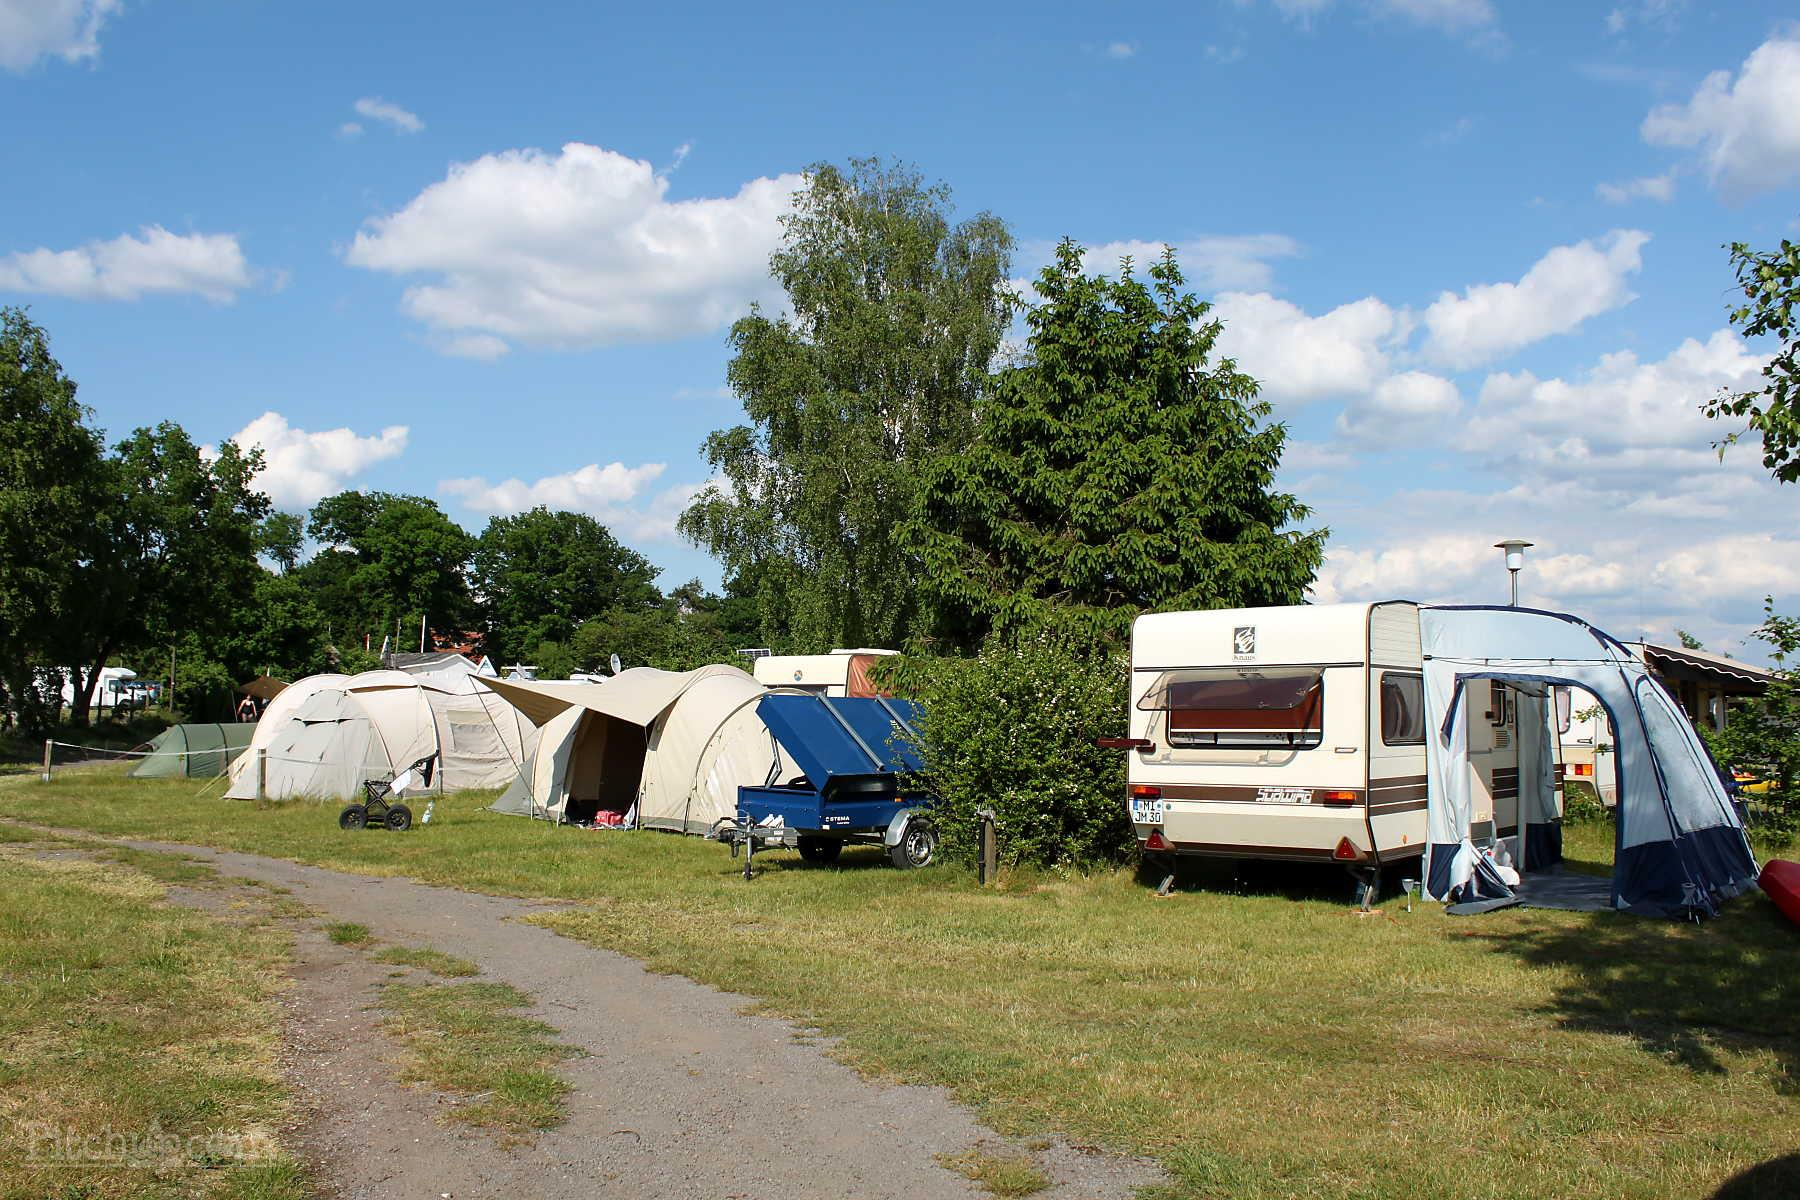 Pitch 80-120 m² + camping-car or caravan or big tent + max. 5 kwh of electricity